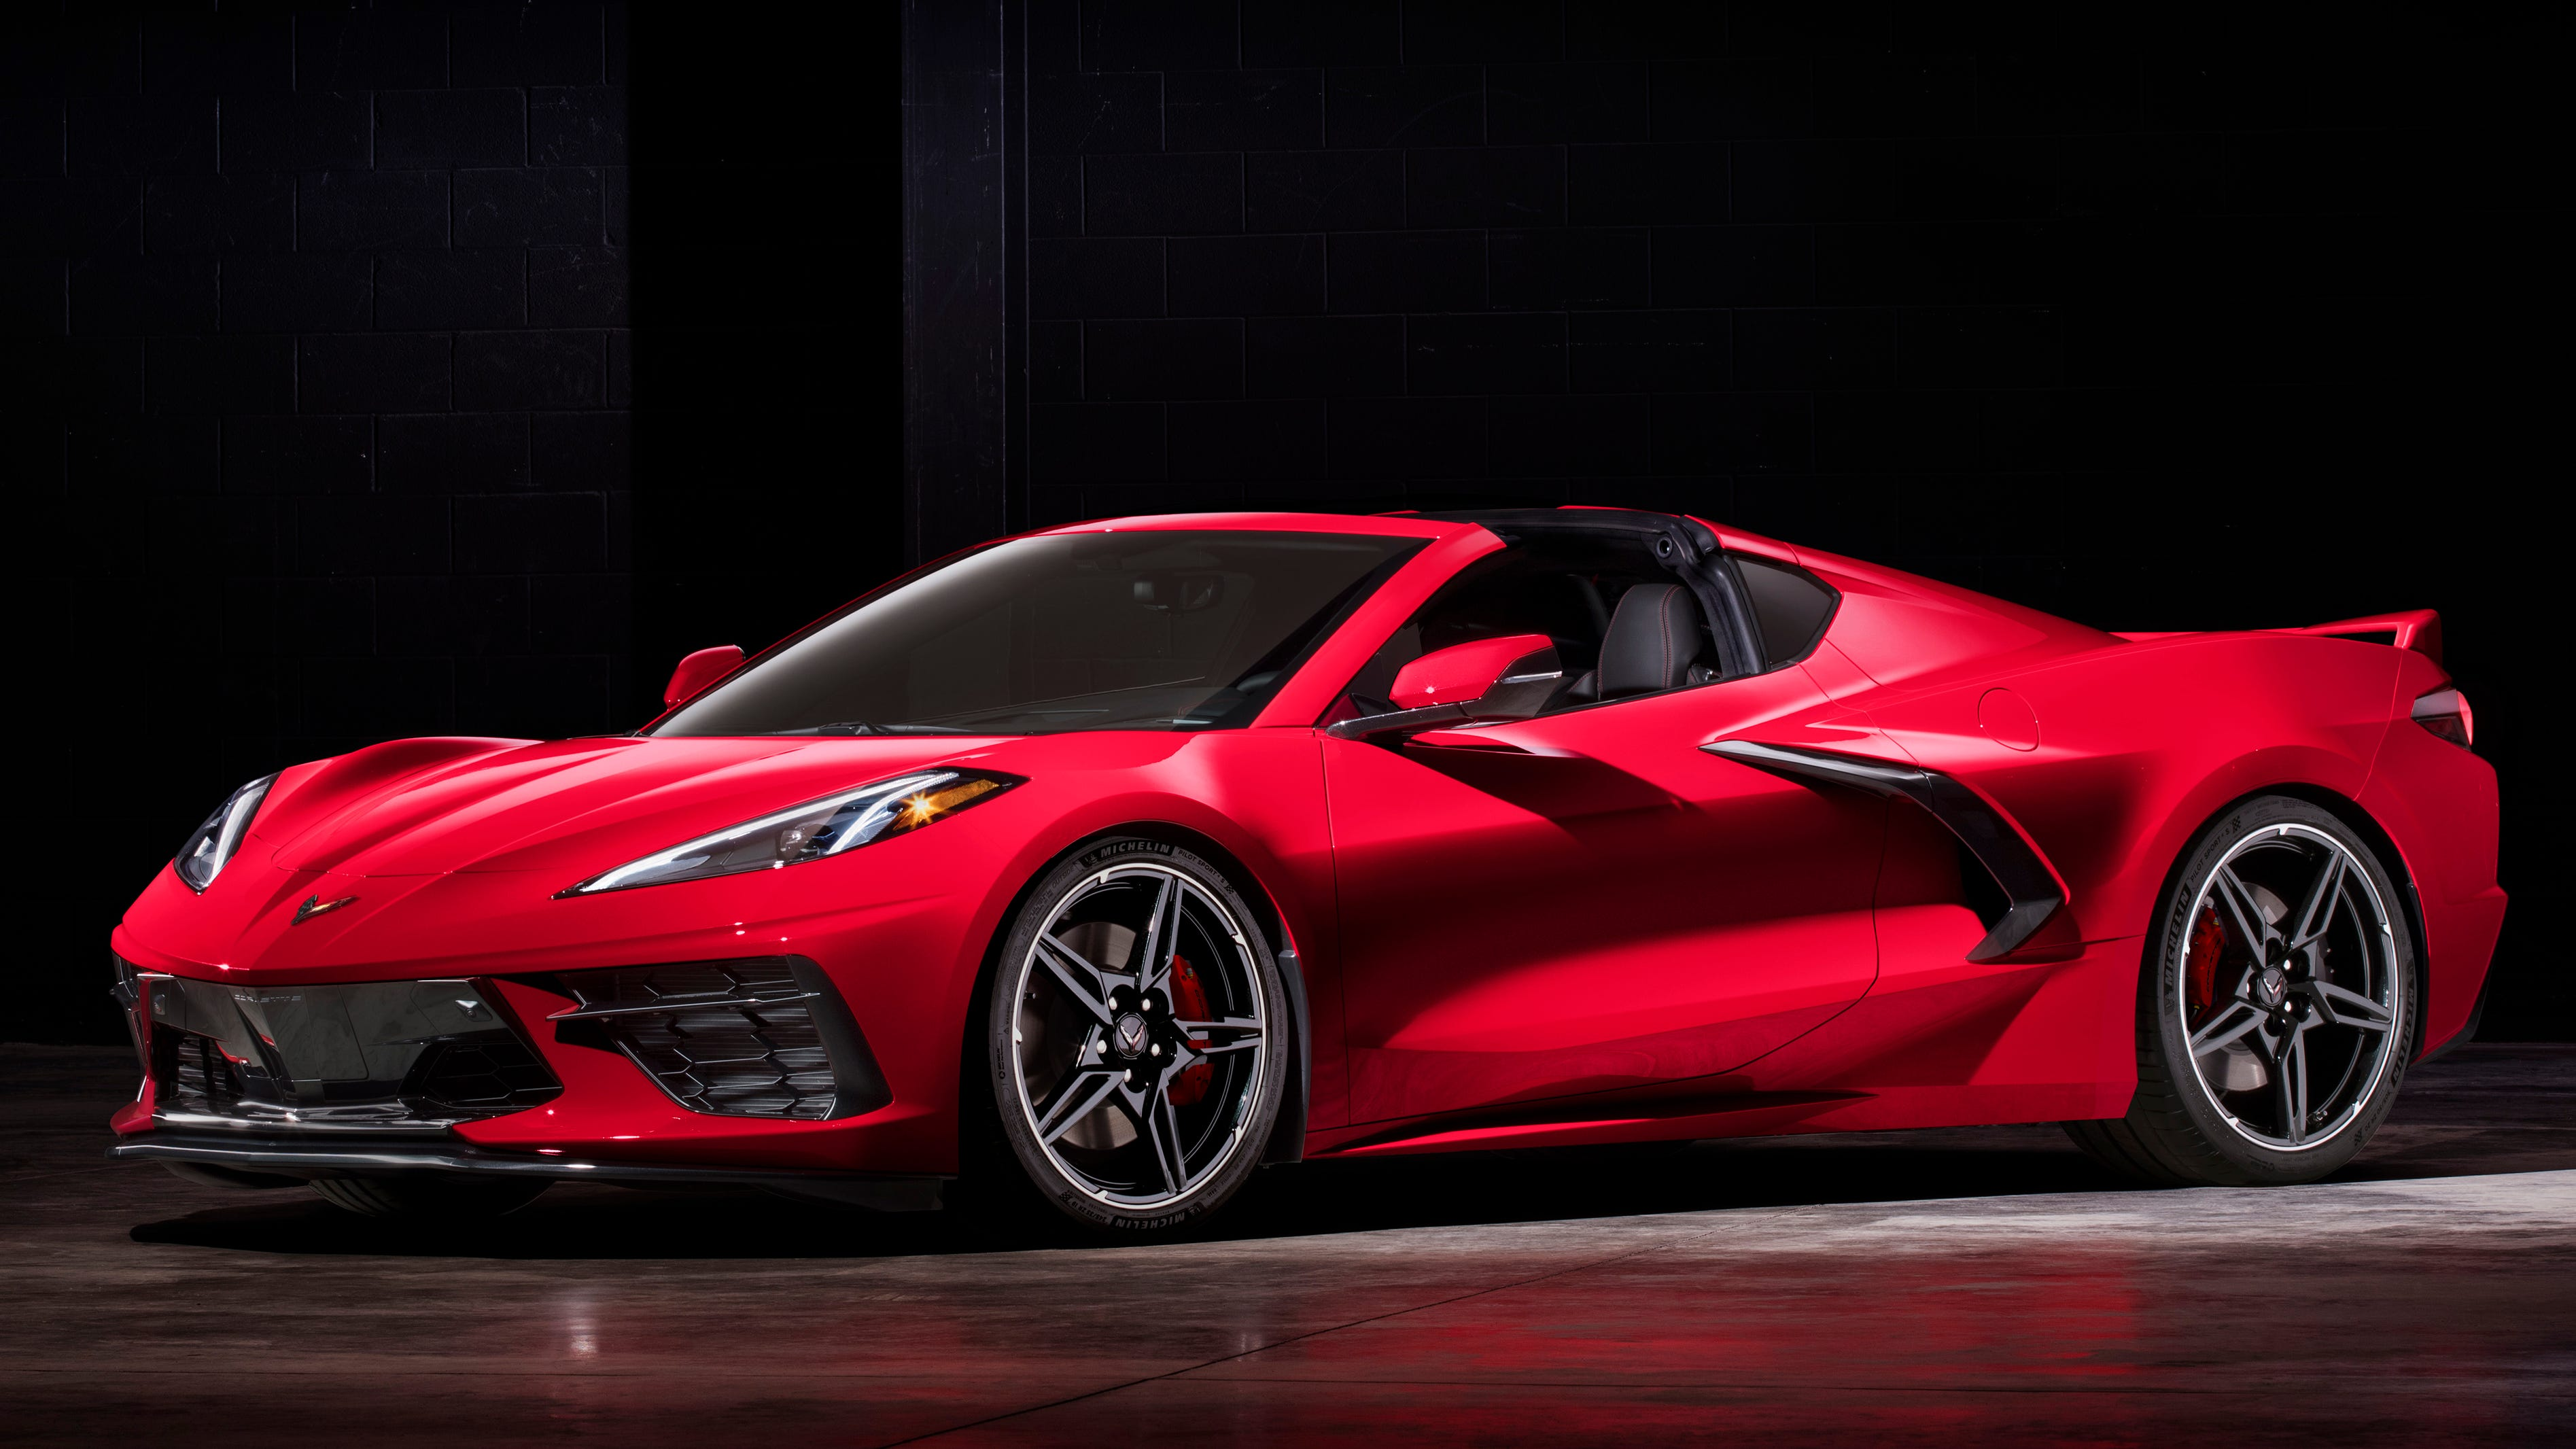 Free Press Car of the Year: 2020 Corvette delivers on decades of promises